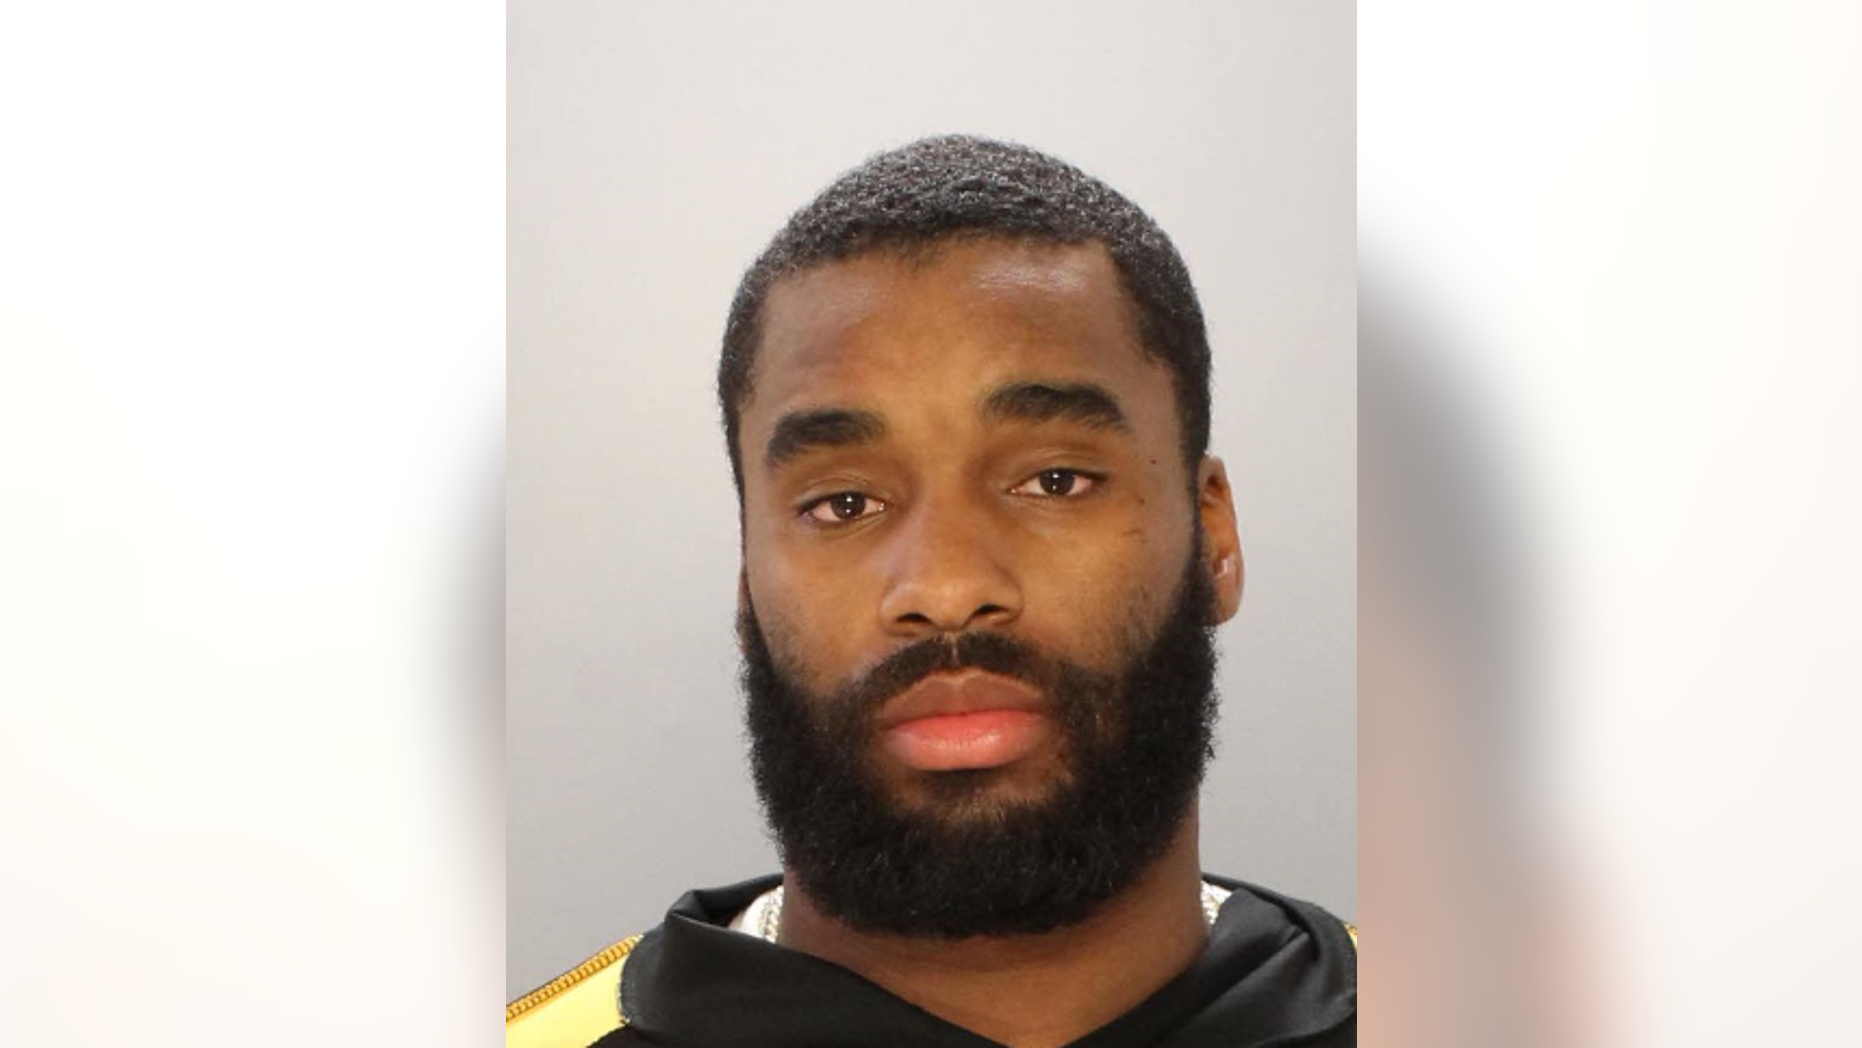 Daryl Worley was charged after he was arrested Sunday morning.